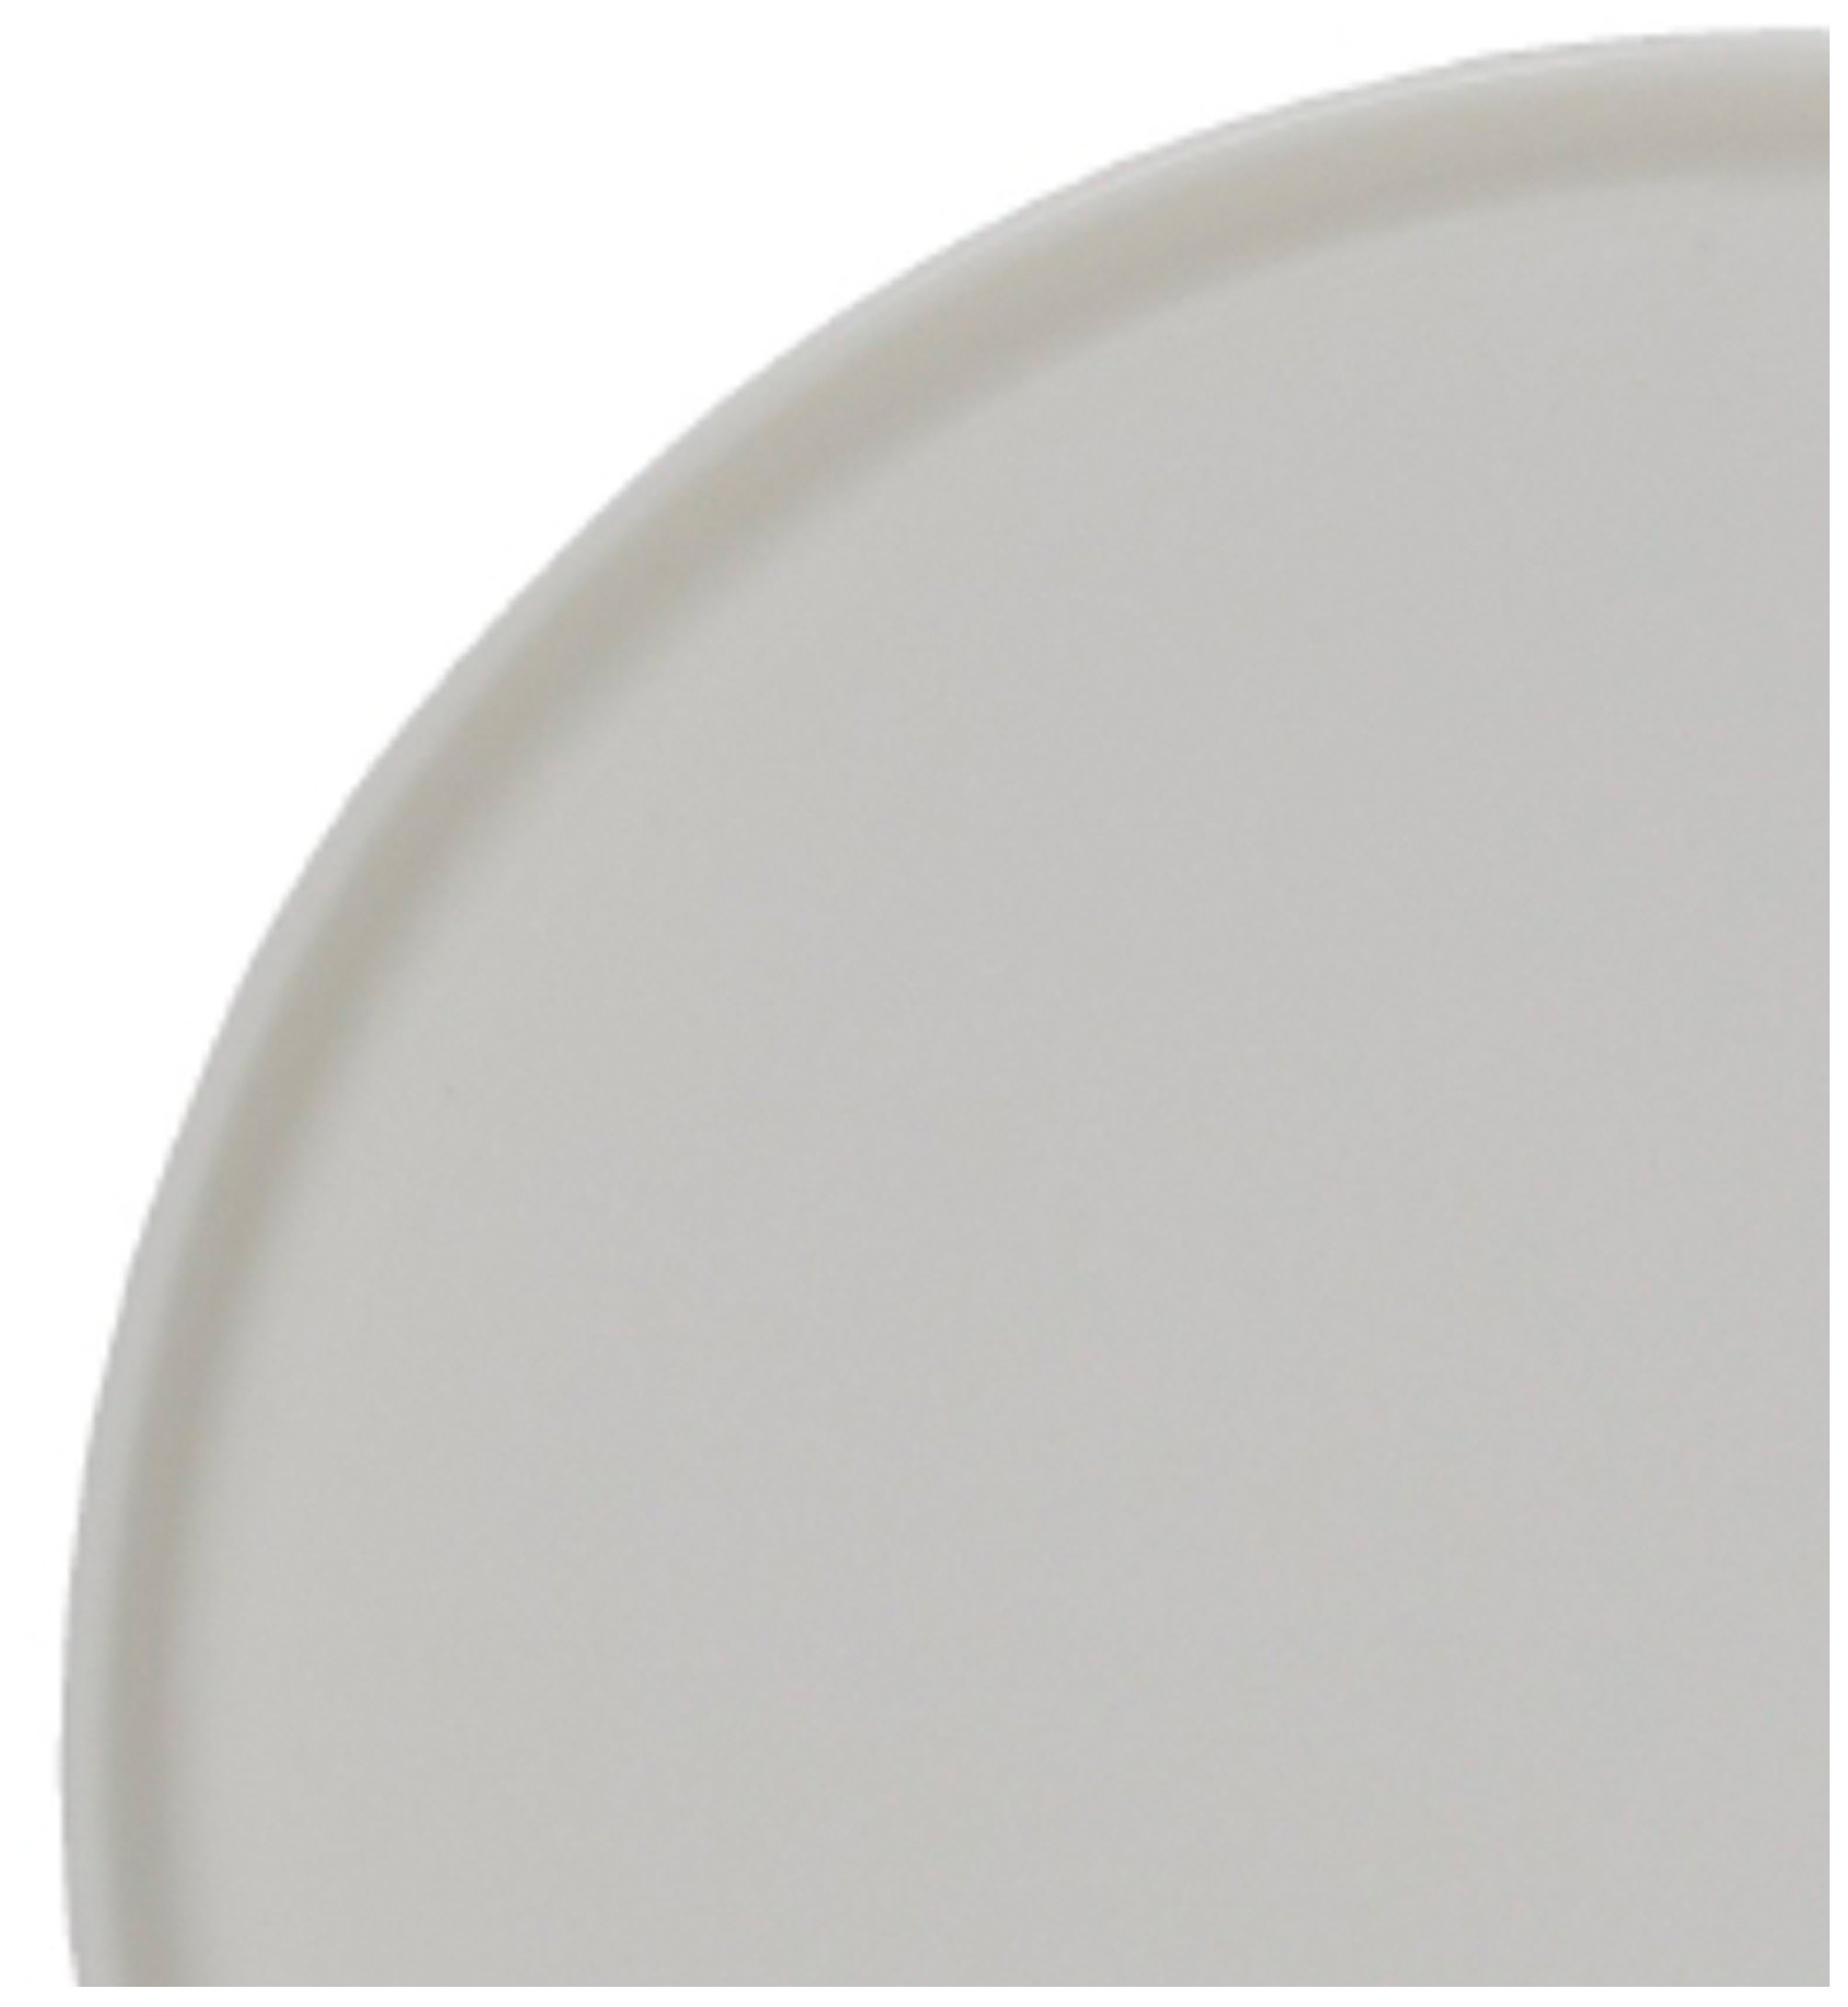 Mikasa Dine3 3-Piece Porcelain Place Setting, White, Service for 1 by Mikasa (Image #8)